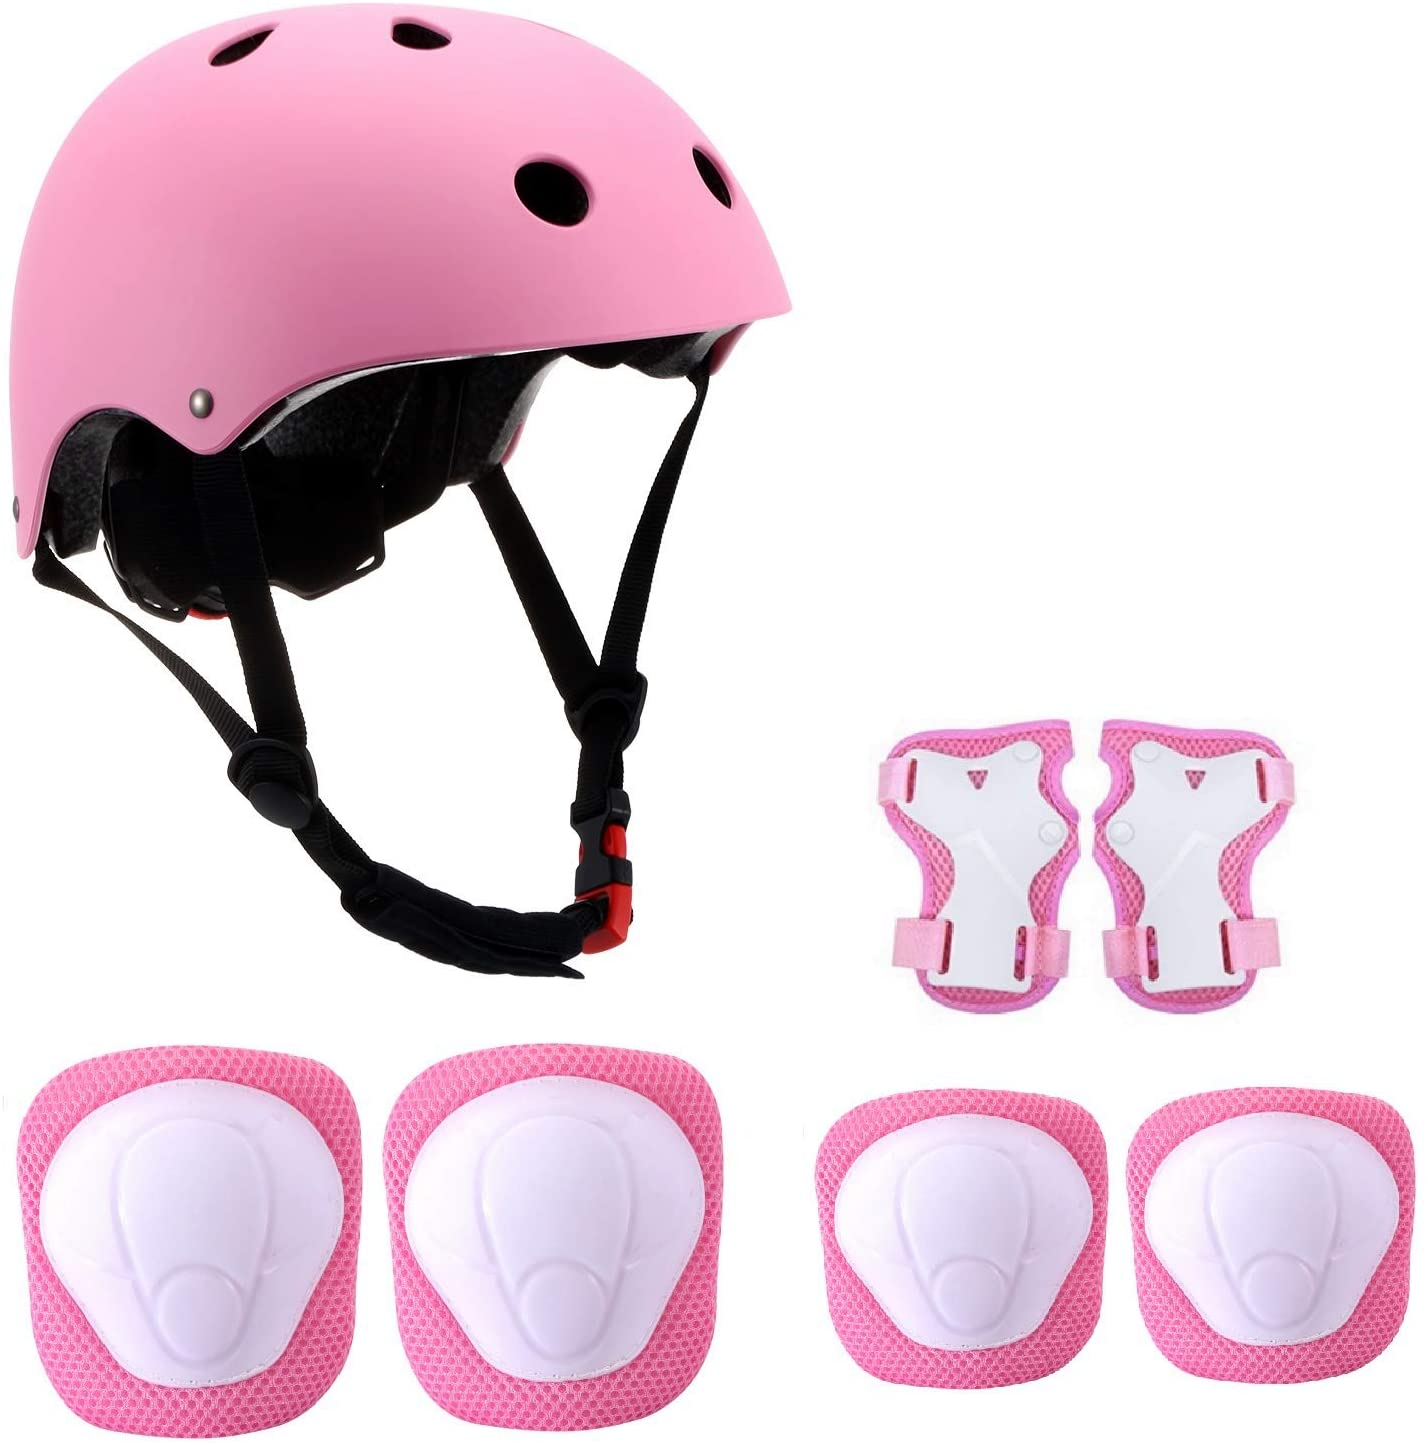 DOMEANYWAY Kids Adjustable Bike Helmet for Ages 3-8 Boys Girls with Sports Protective Gear Set Knee Elbow Wrist Pads for Bike/Skate/Rollerblade/Multi-Sport, CPSC Certified